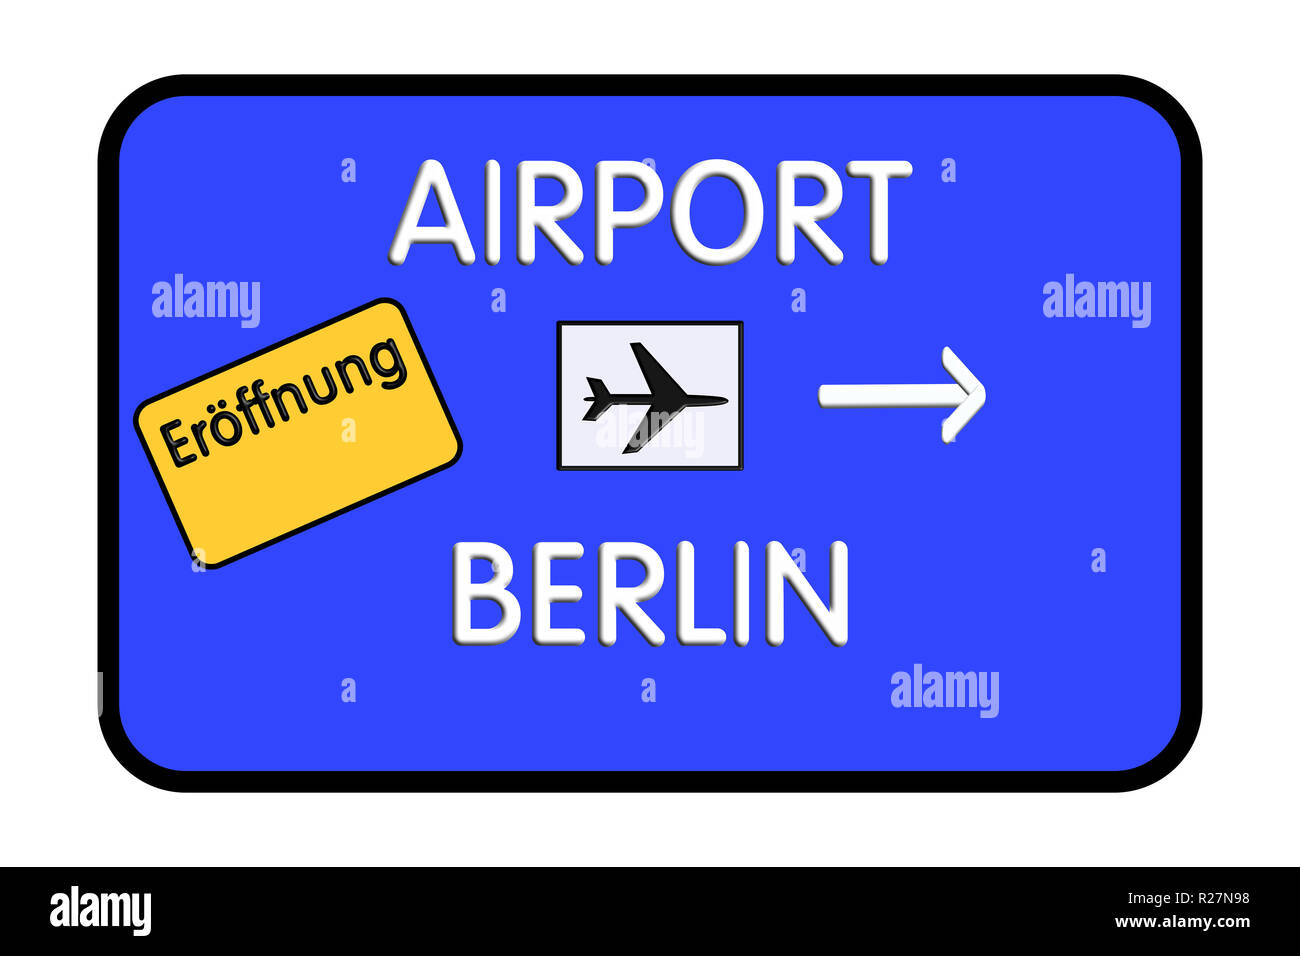 Germany Airport Highway Road Sign 3D Illustration - Stock Image